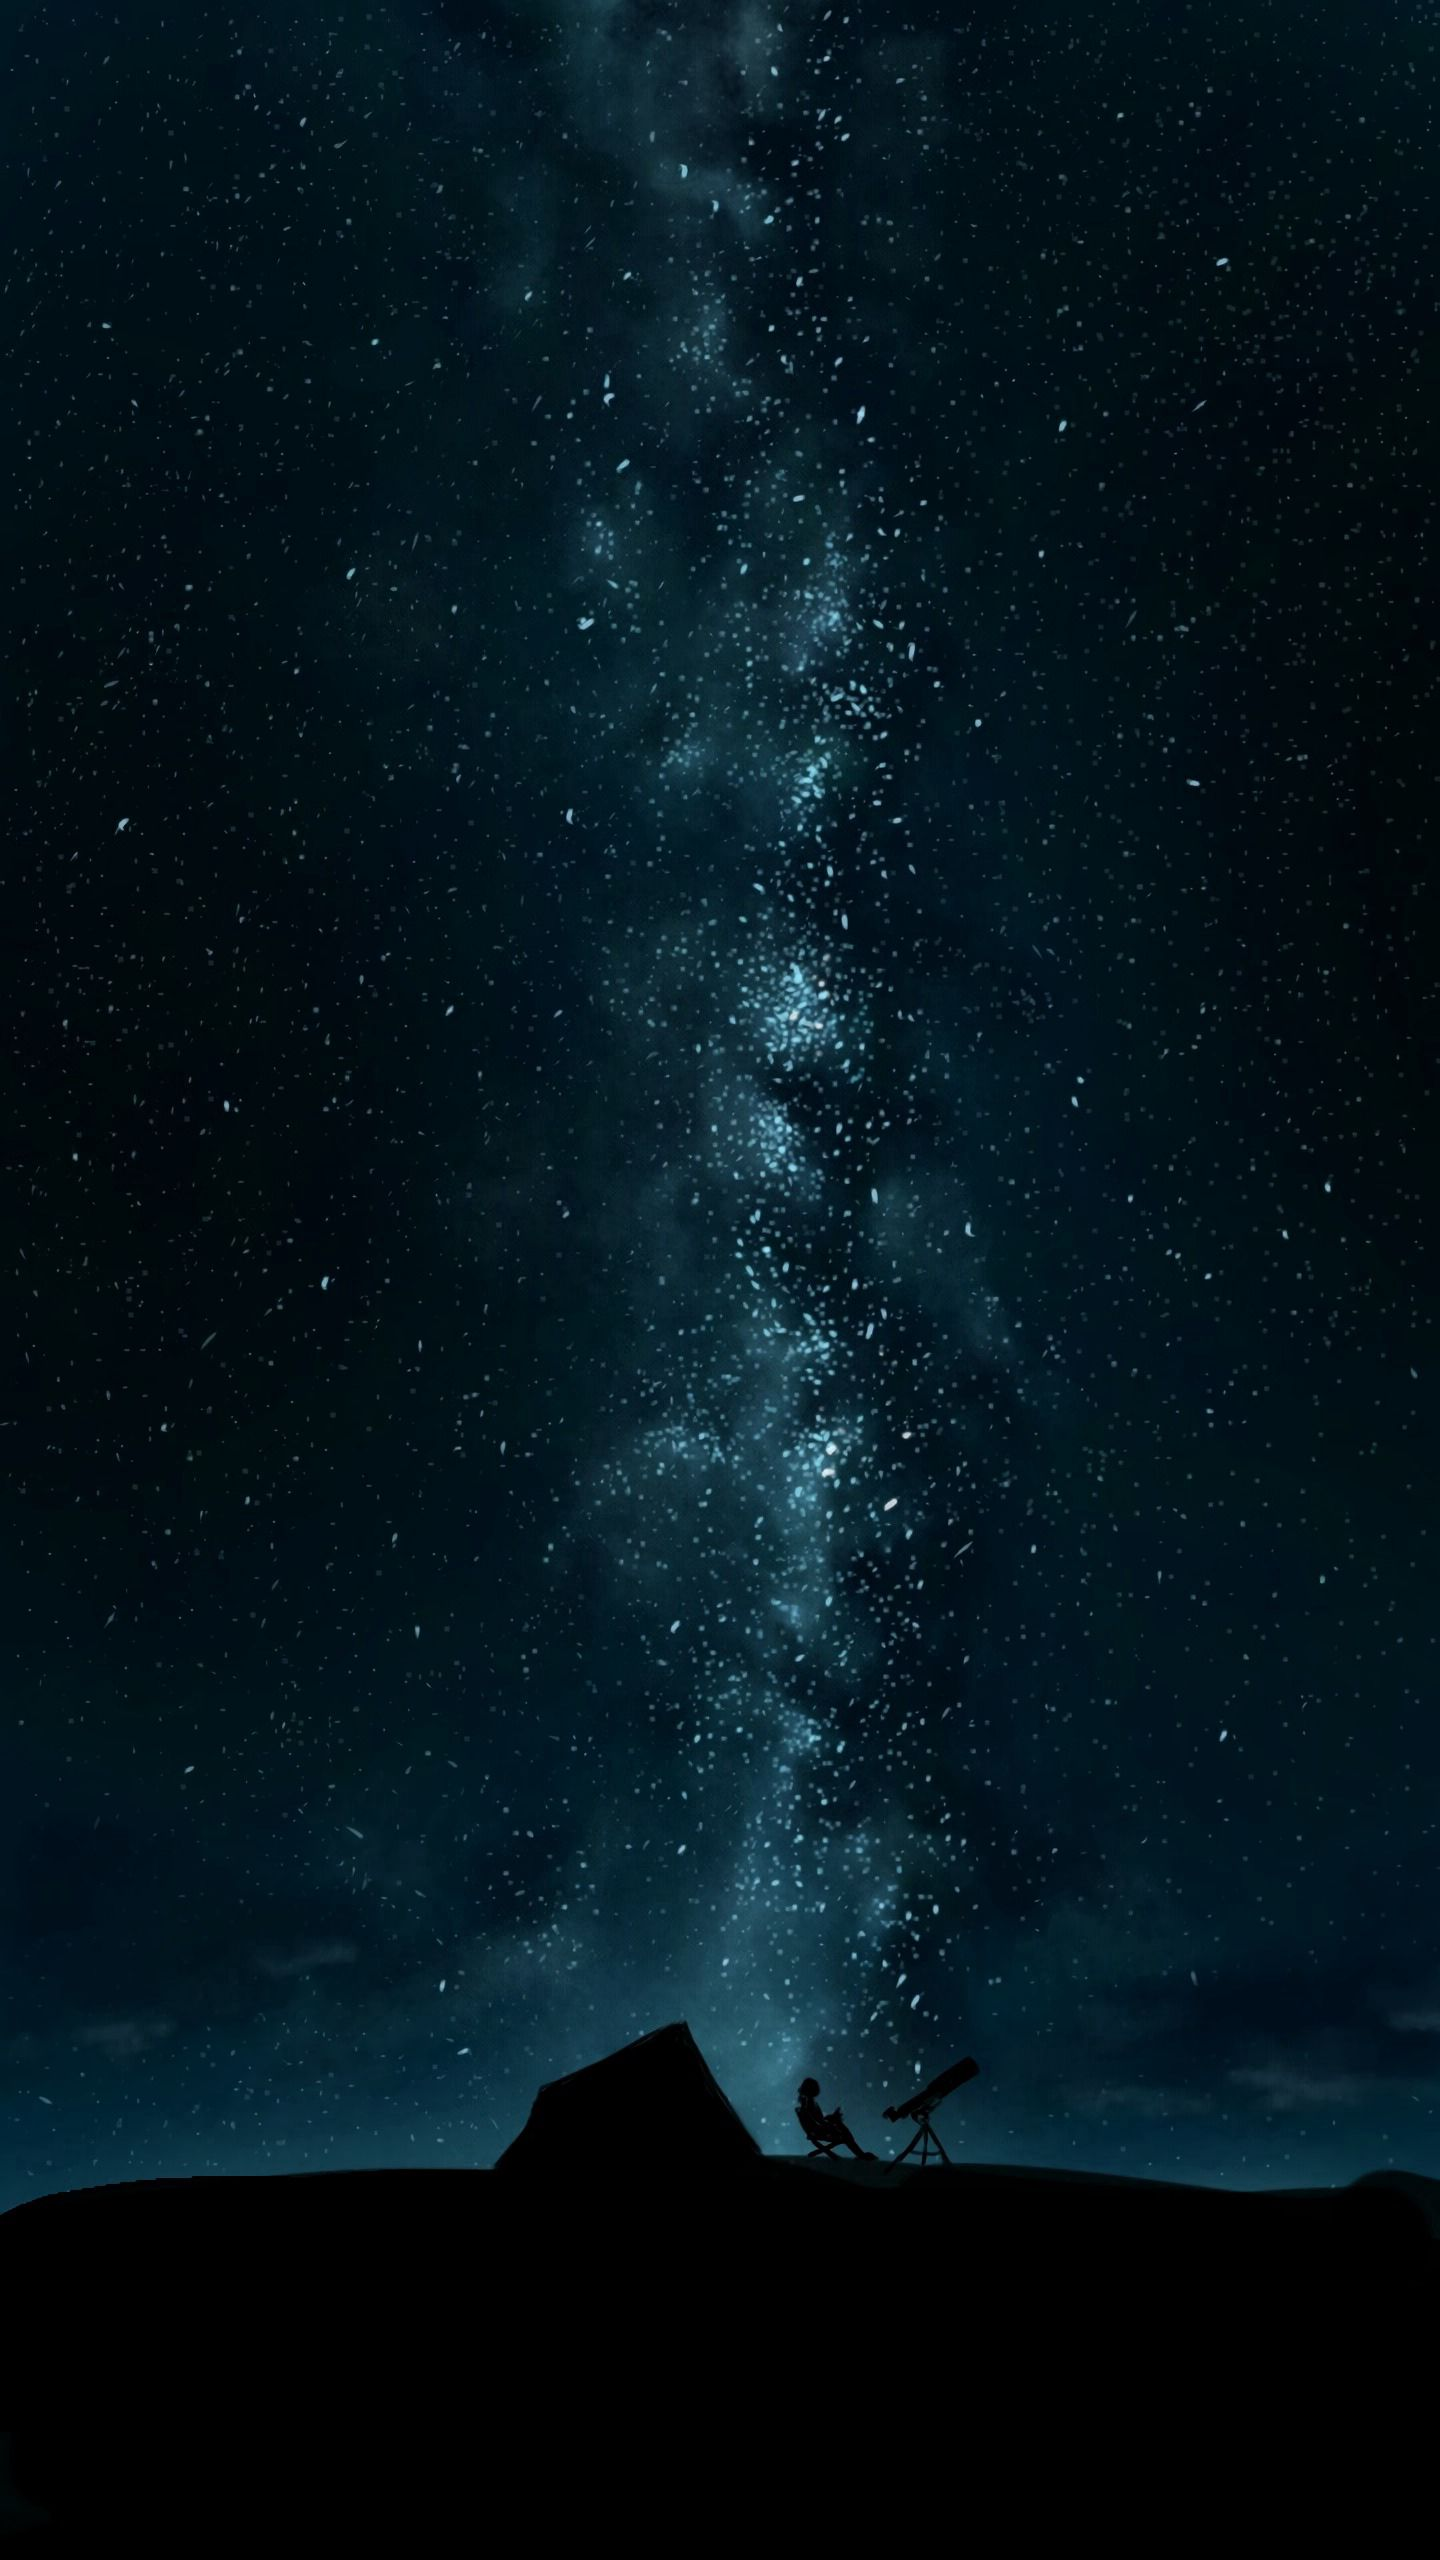 82167 download wallpaper Night, Dark, Silhouette, Starry Sky, Telescope screensavers and pictures for free